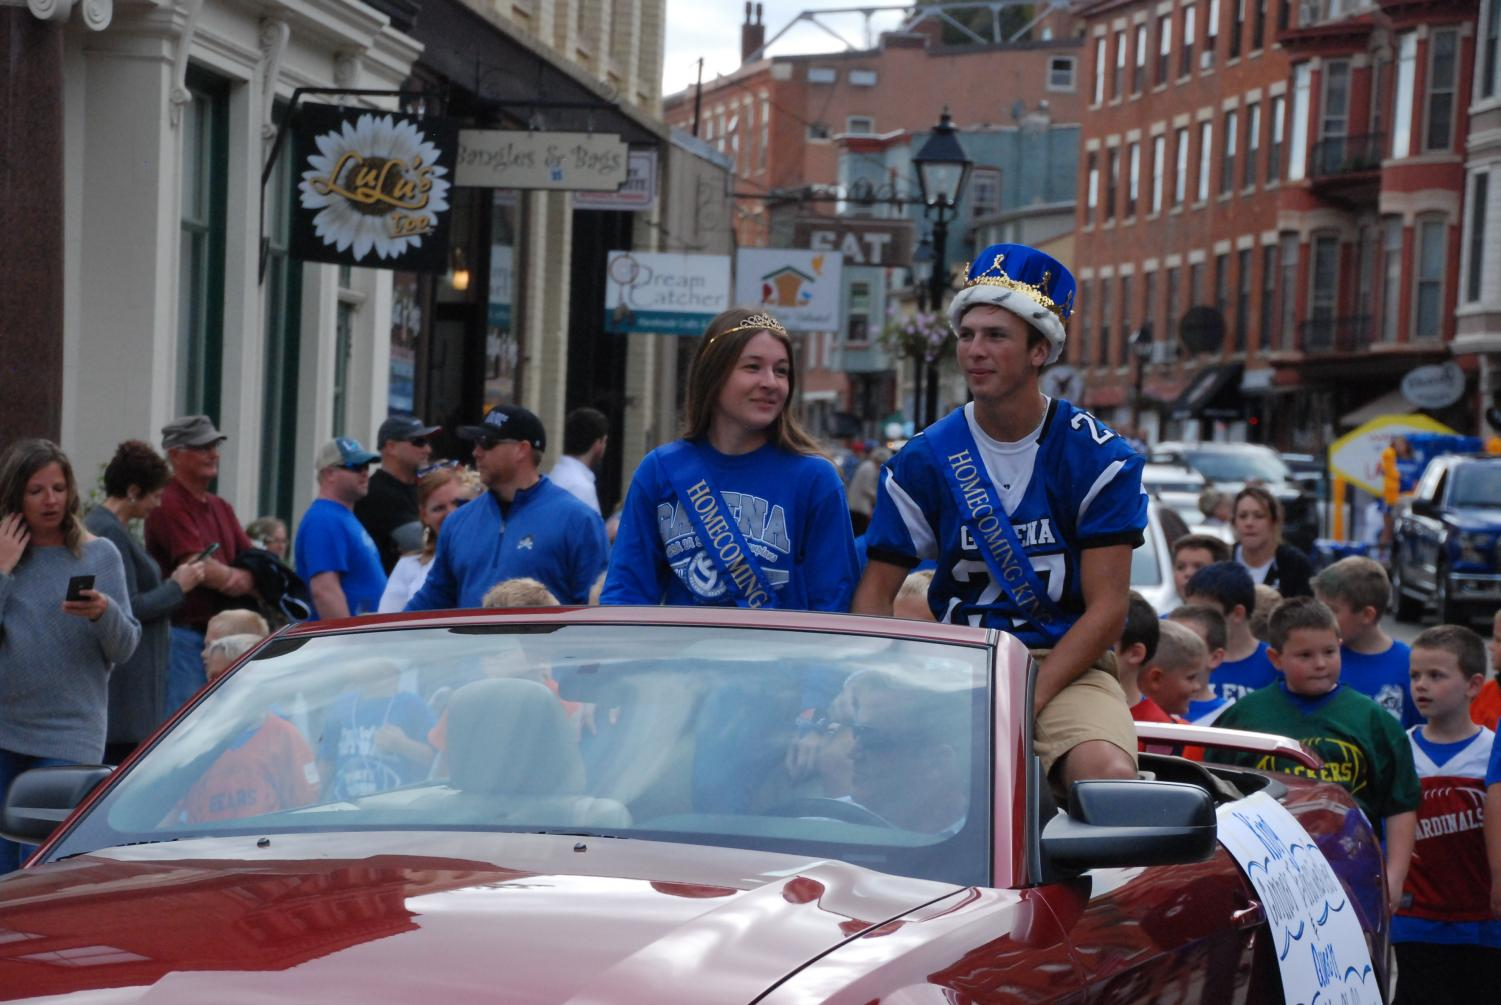 Homecoming king and queen, Samantha Stoffregen '19 and Conner Einsweiler '19, roll down the street during the homecoming parade.